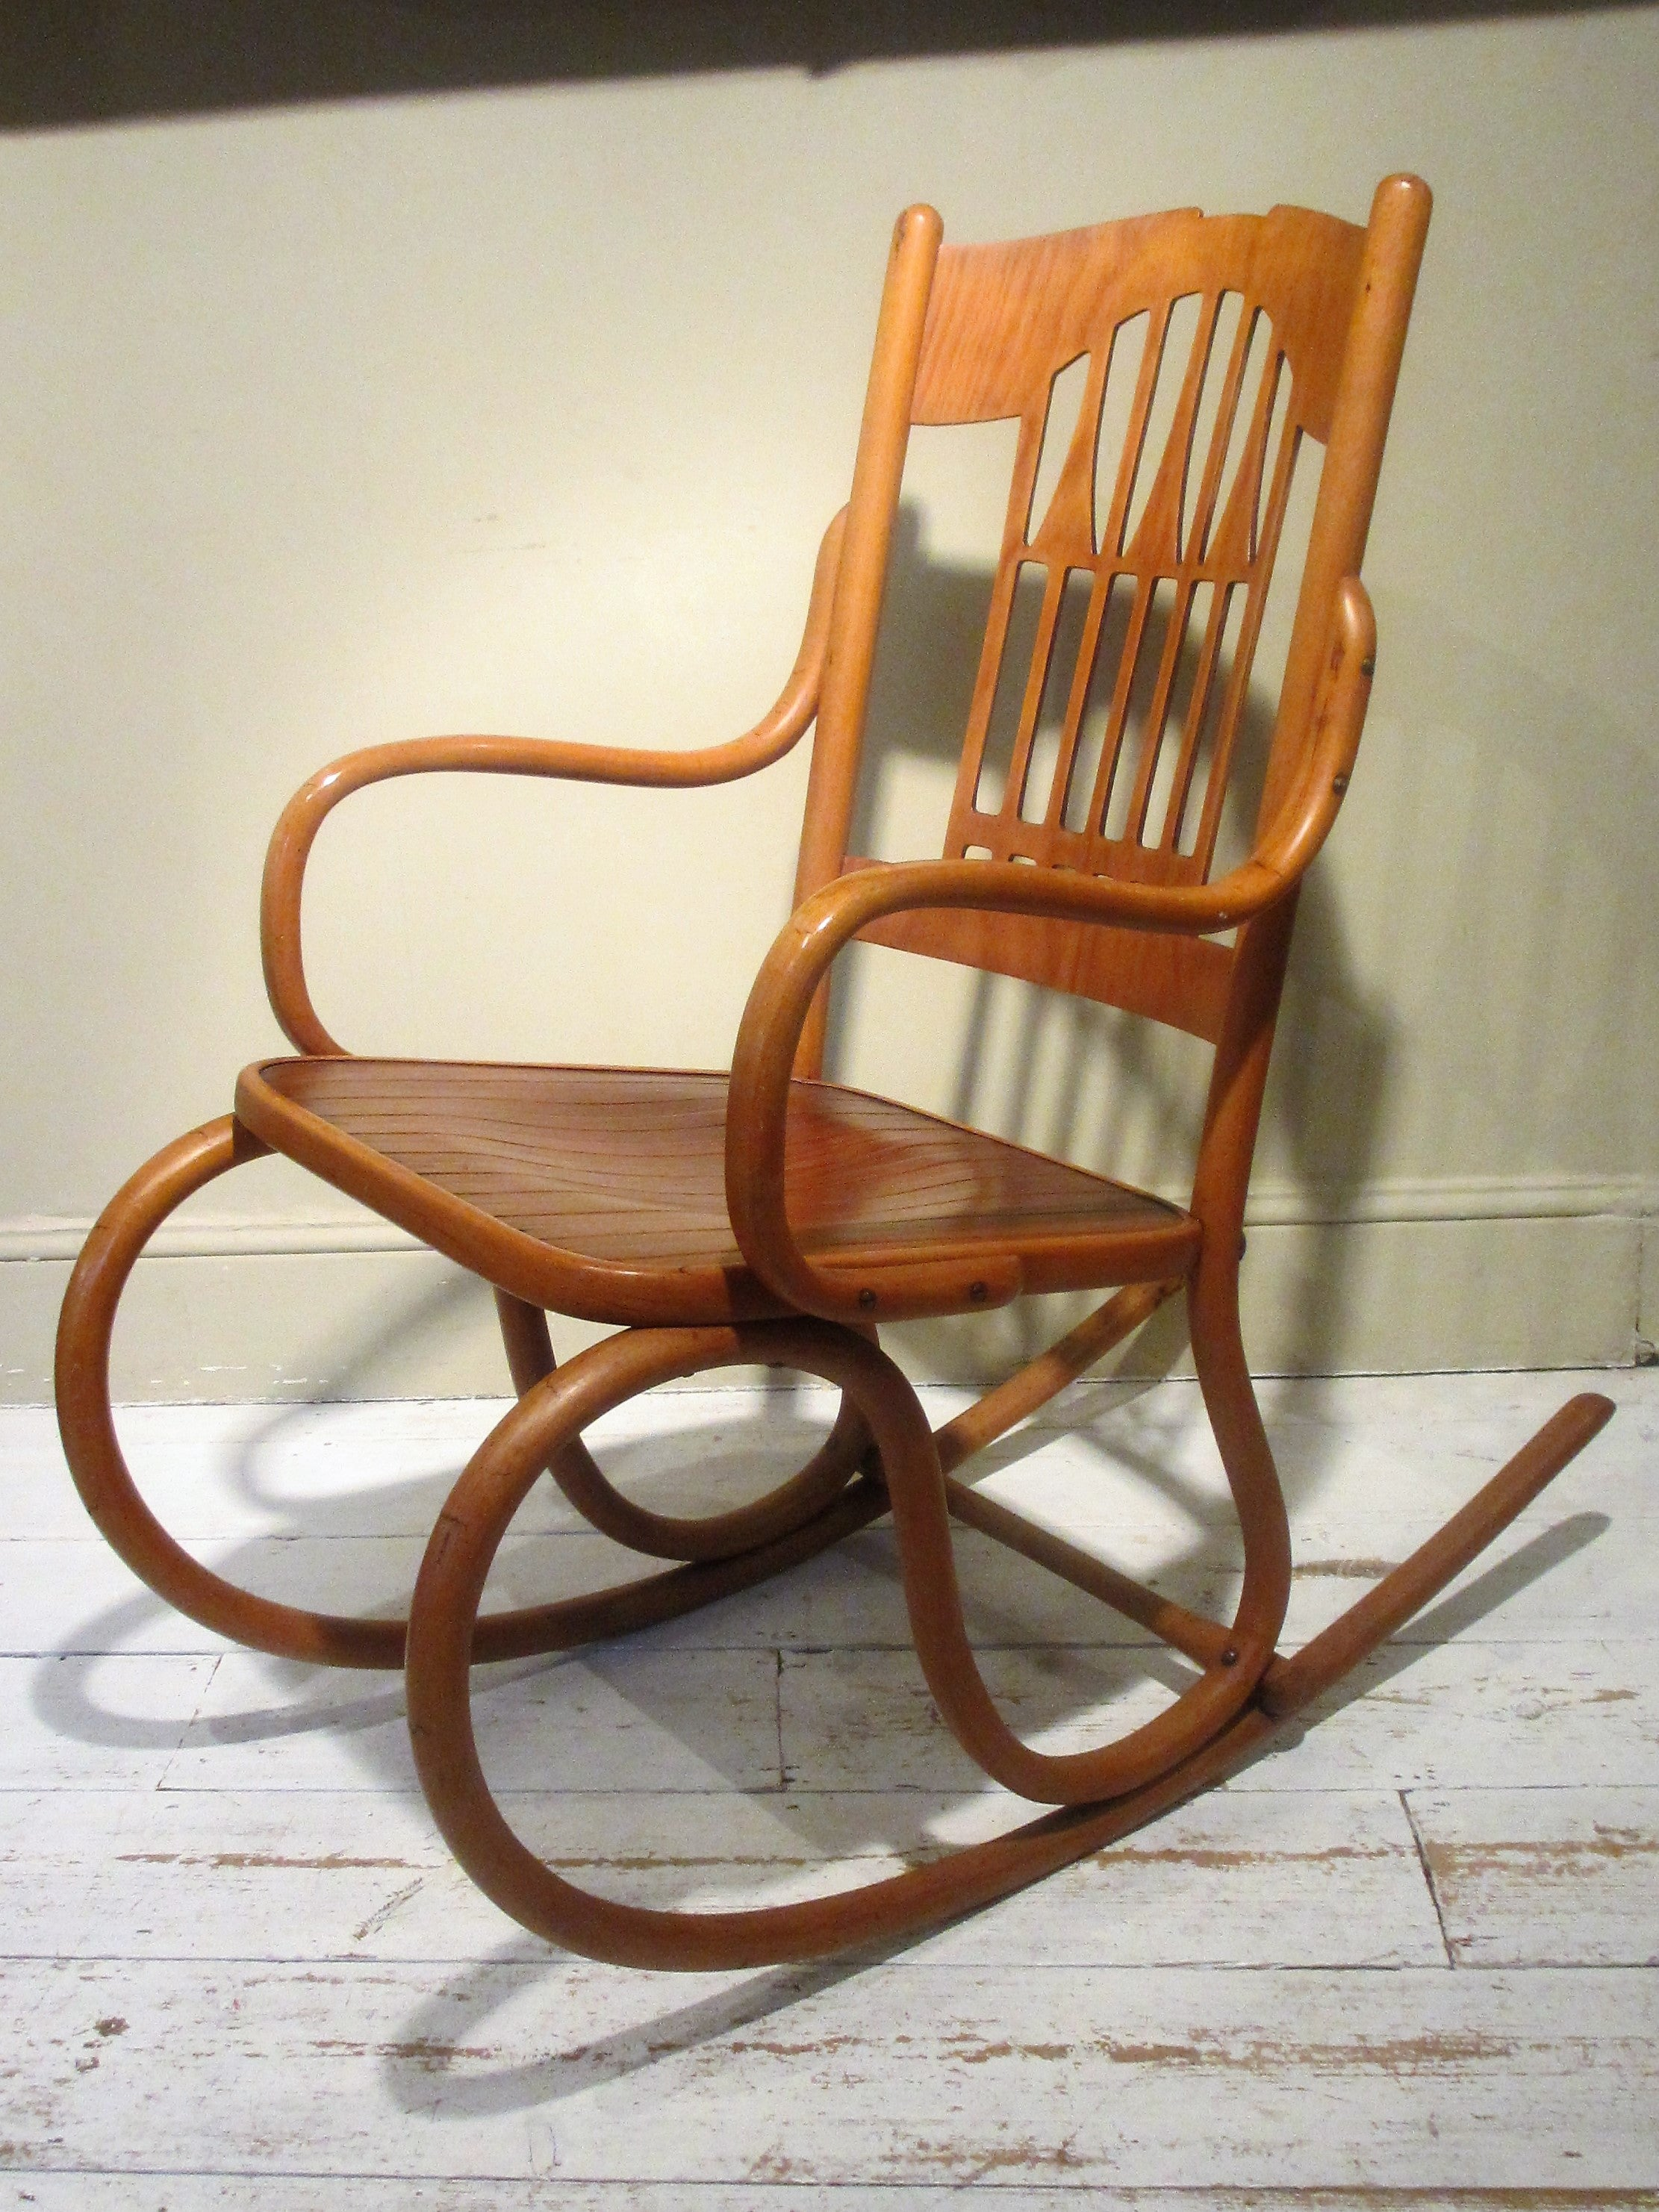 Bentwood Furniture, The Dawn Of Mechanisation.